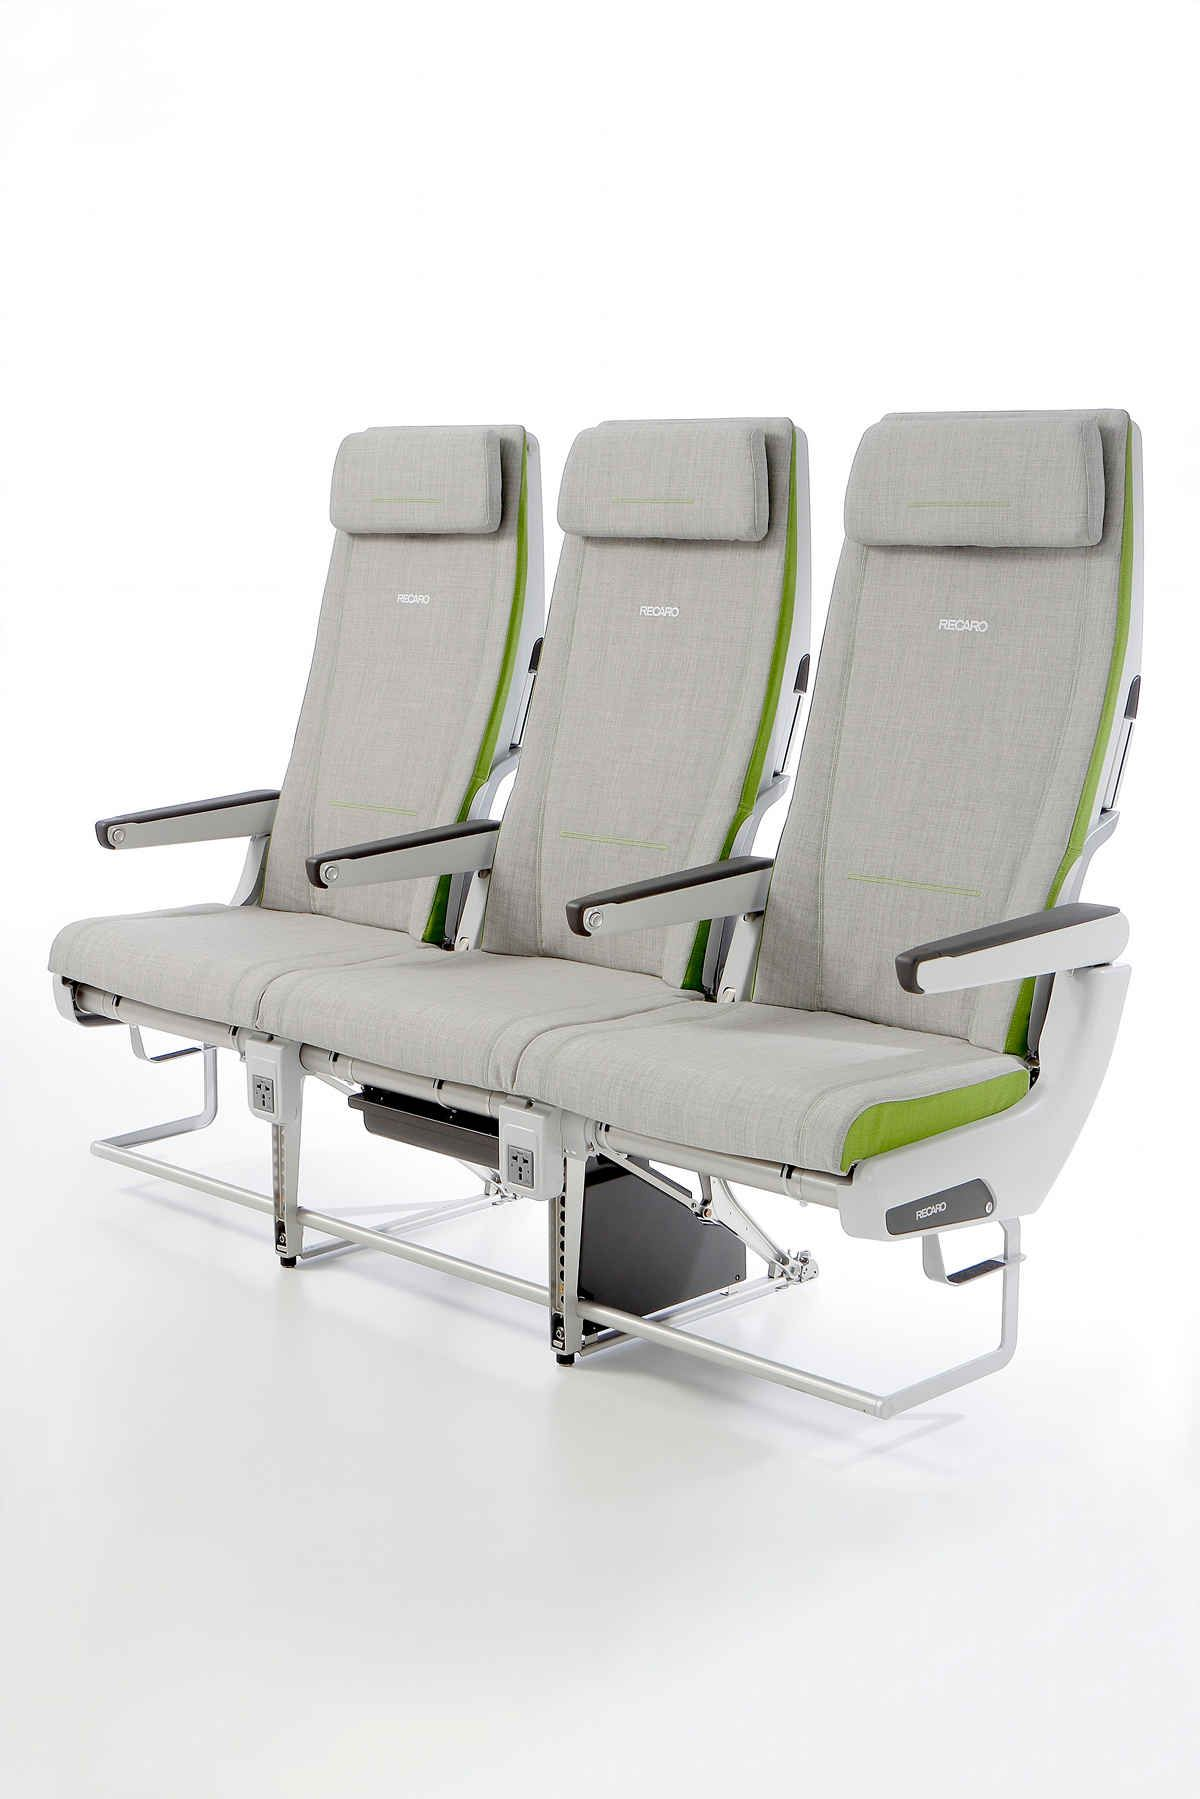 hamburg recaro aircraft seating nominated for the 2013 crystal cabin award aircraft interior. Black Bedroom Furniture Sets. Home Design Ideas